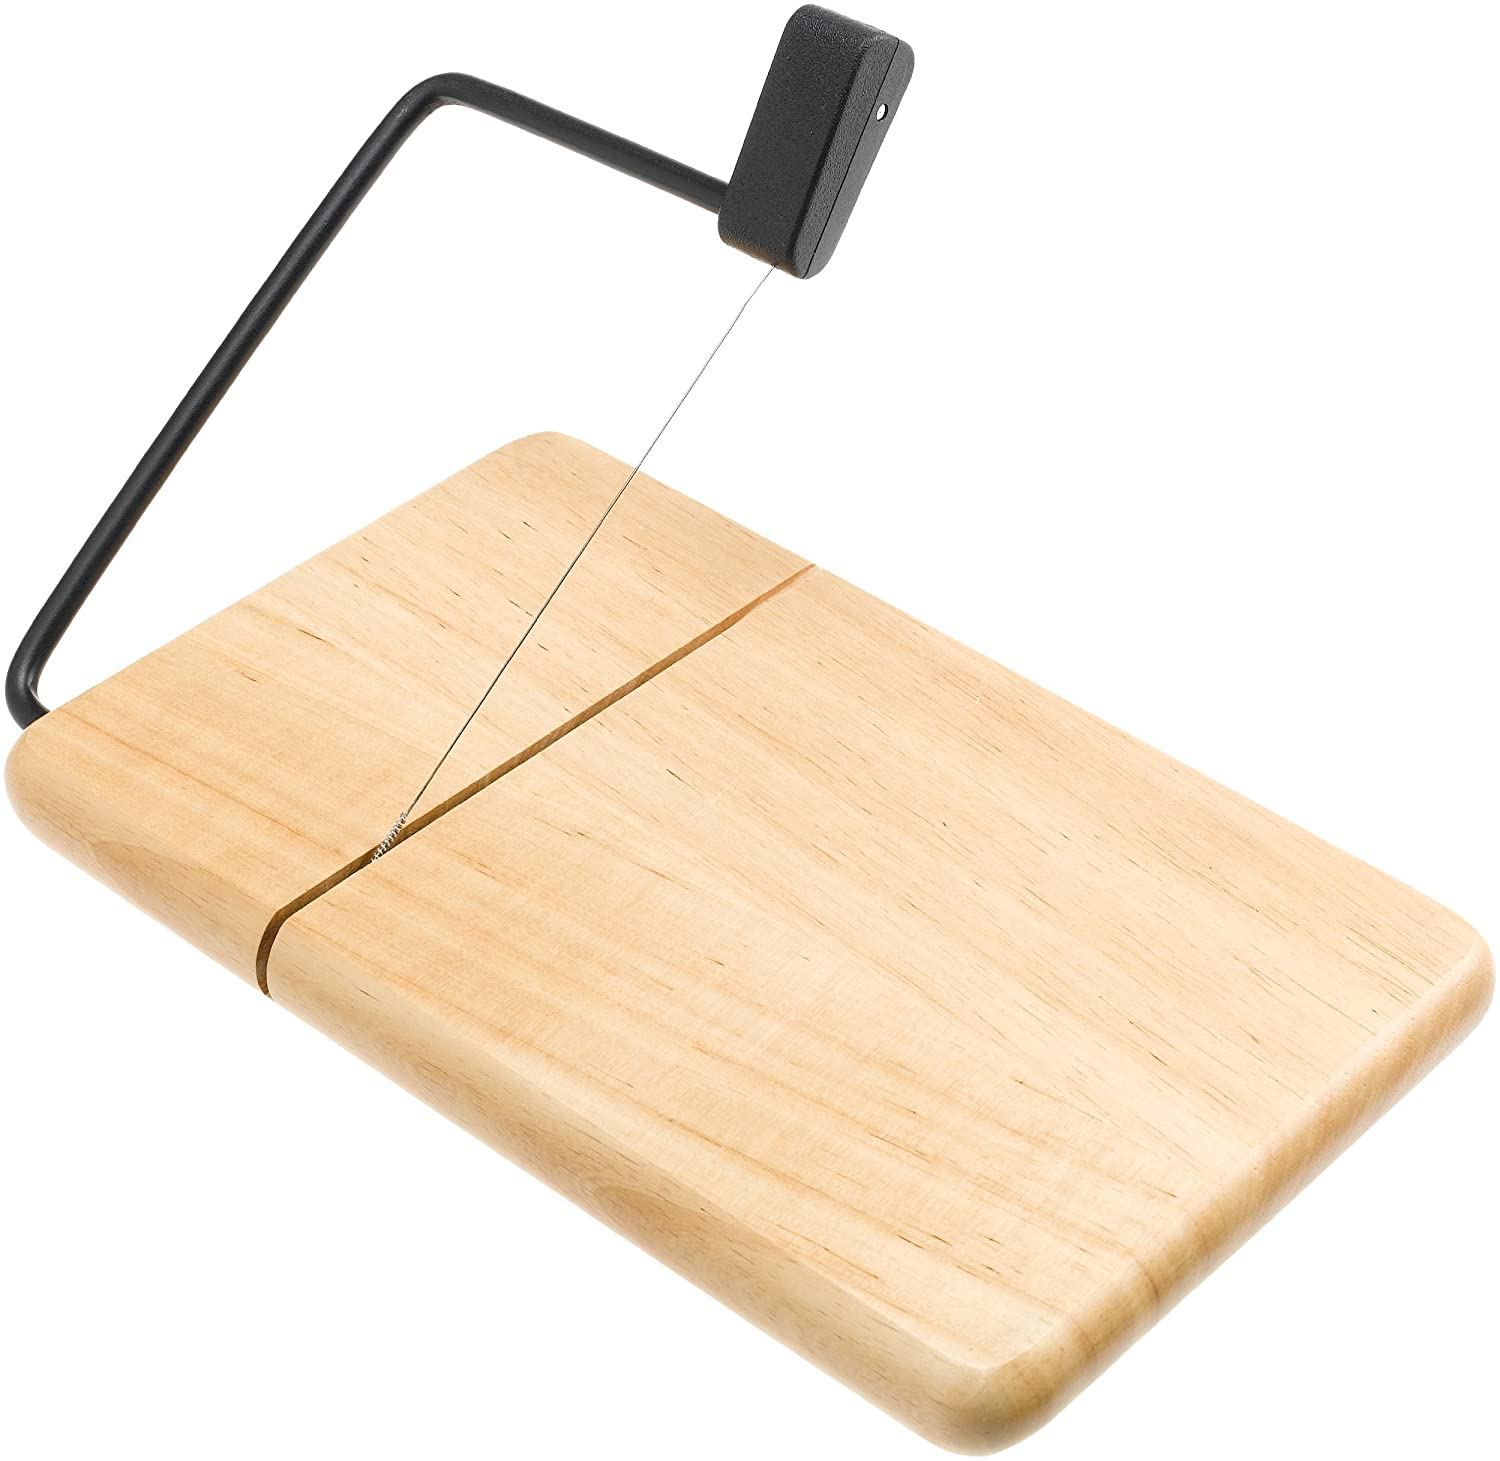 Prodyne 805B Thick Beech Wood Cheese Slicer